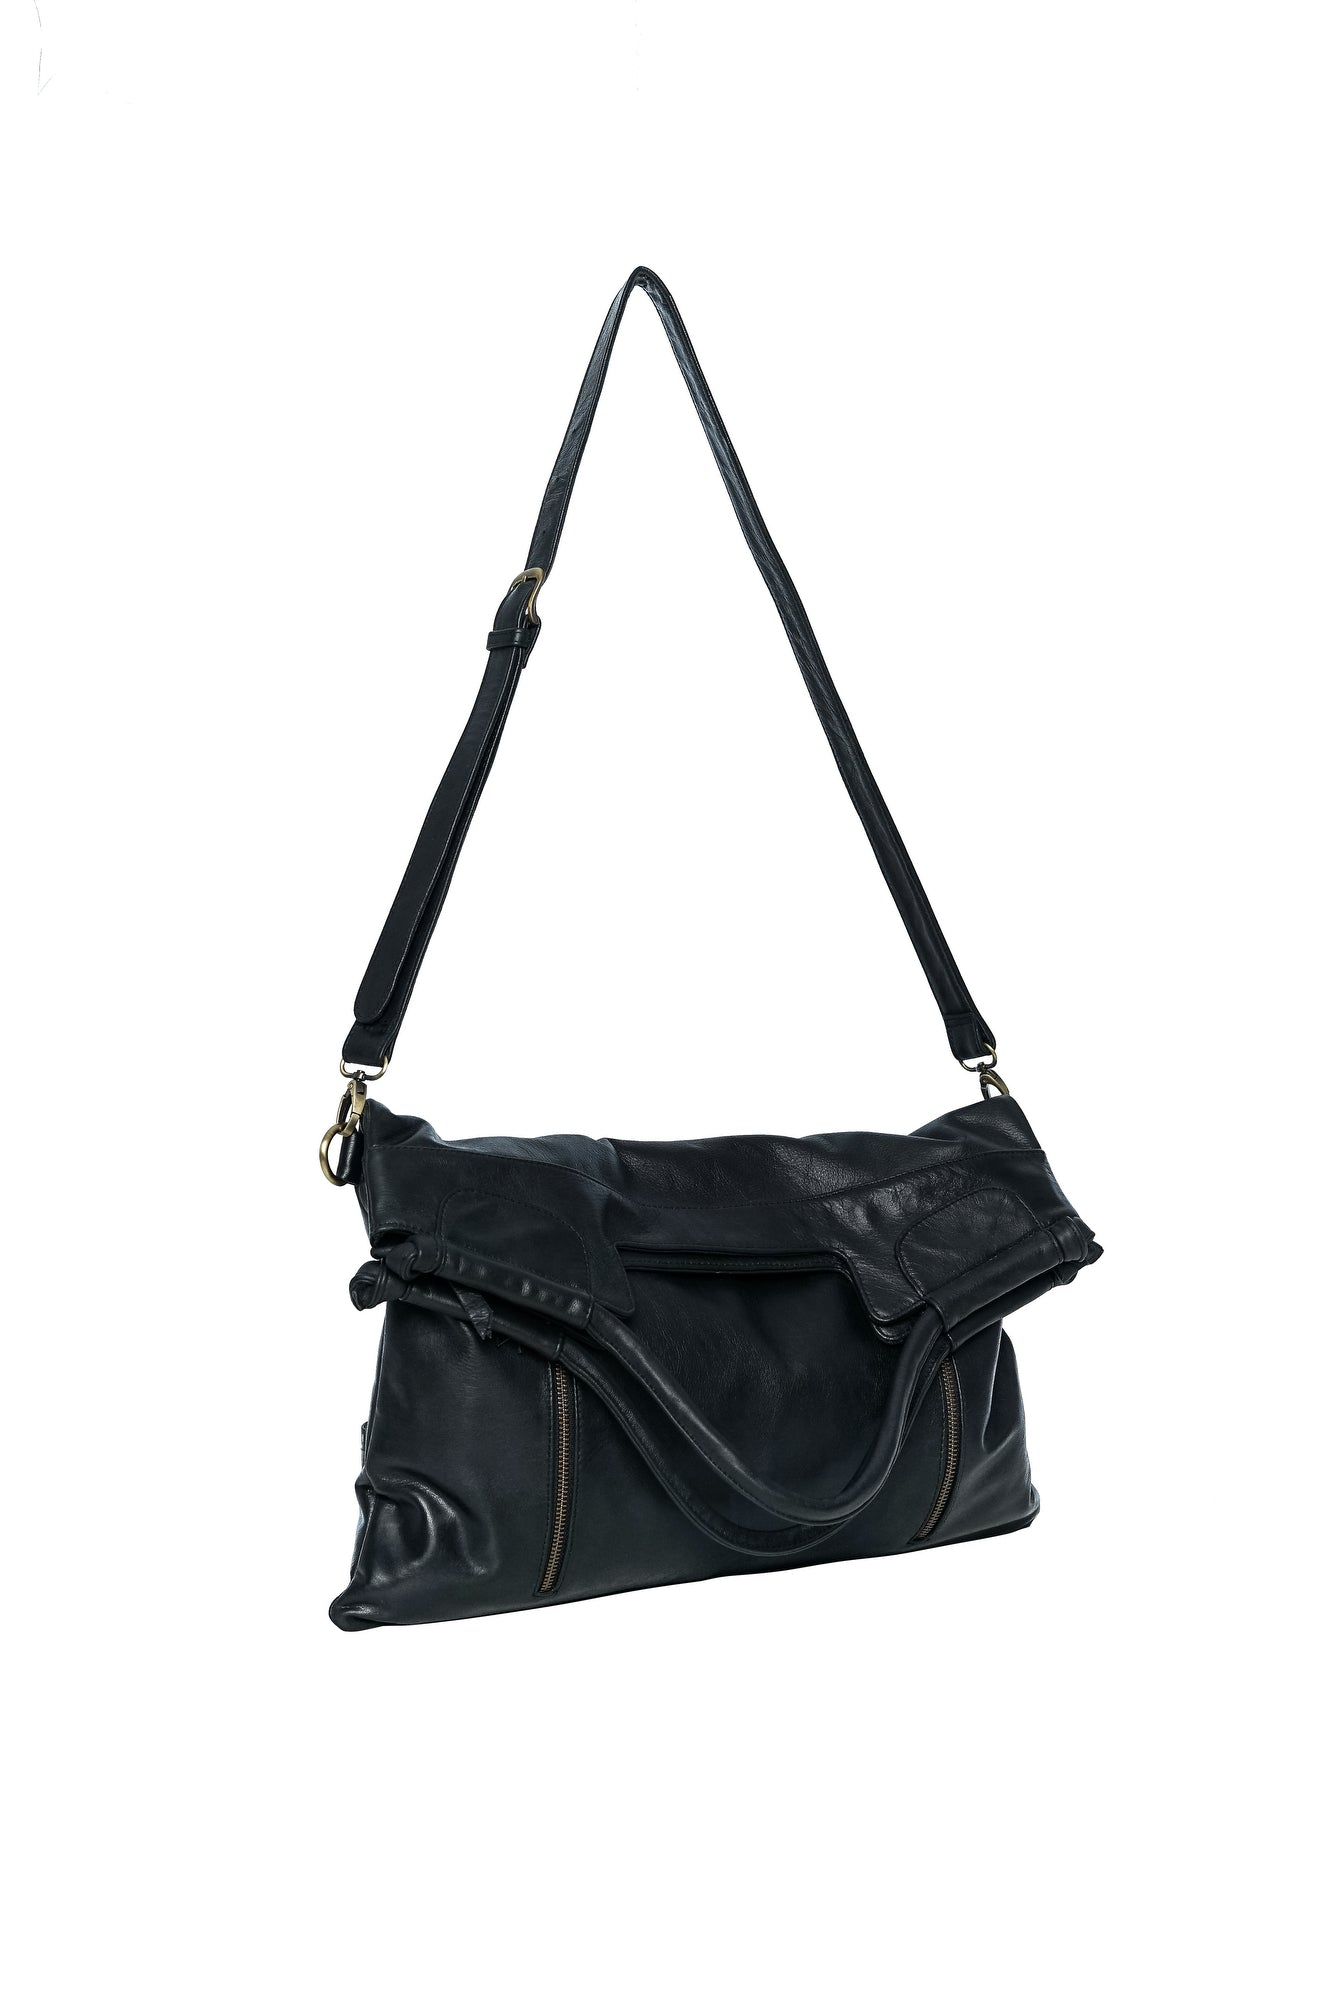 black leather cross body bag for women